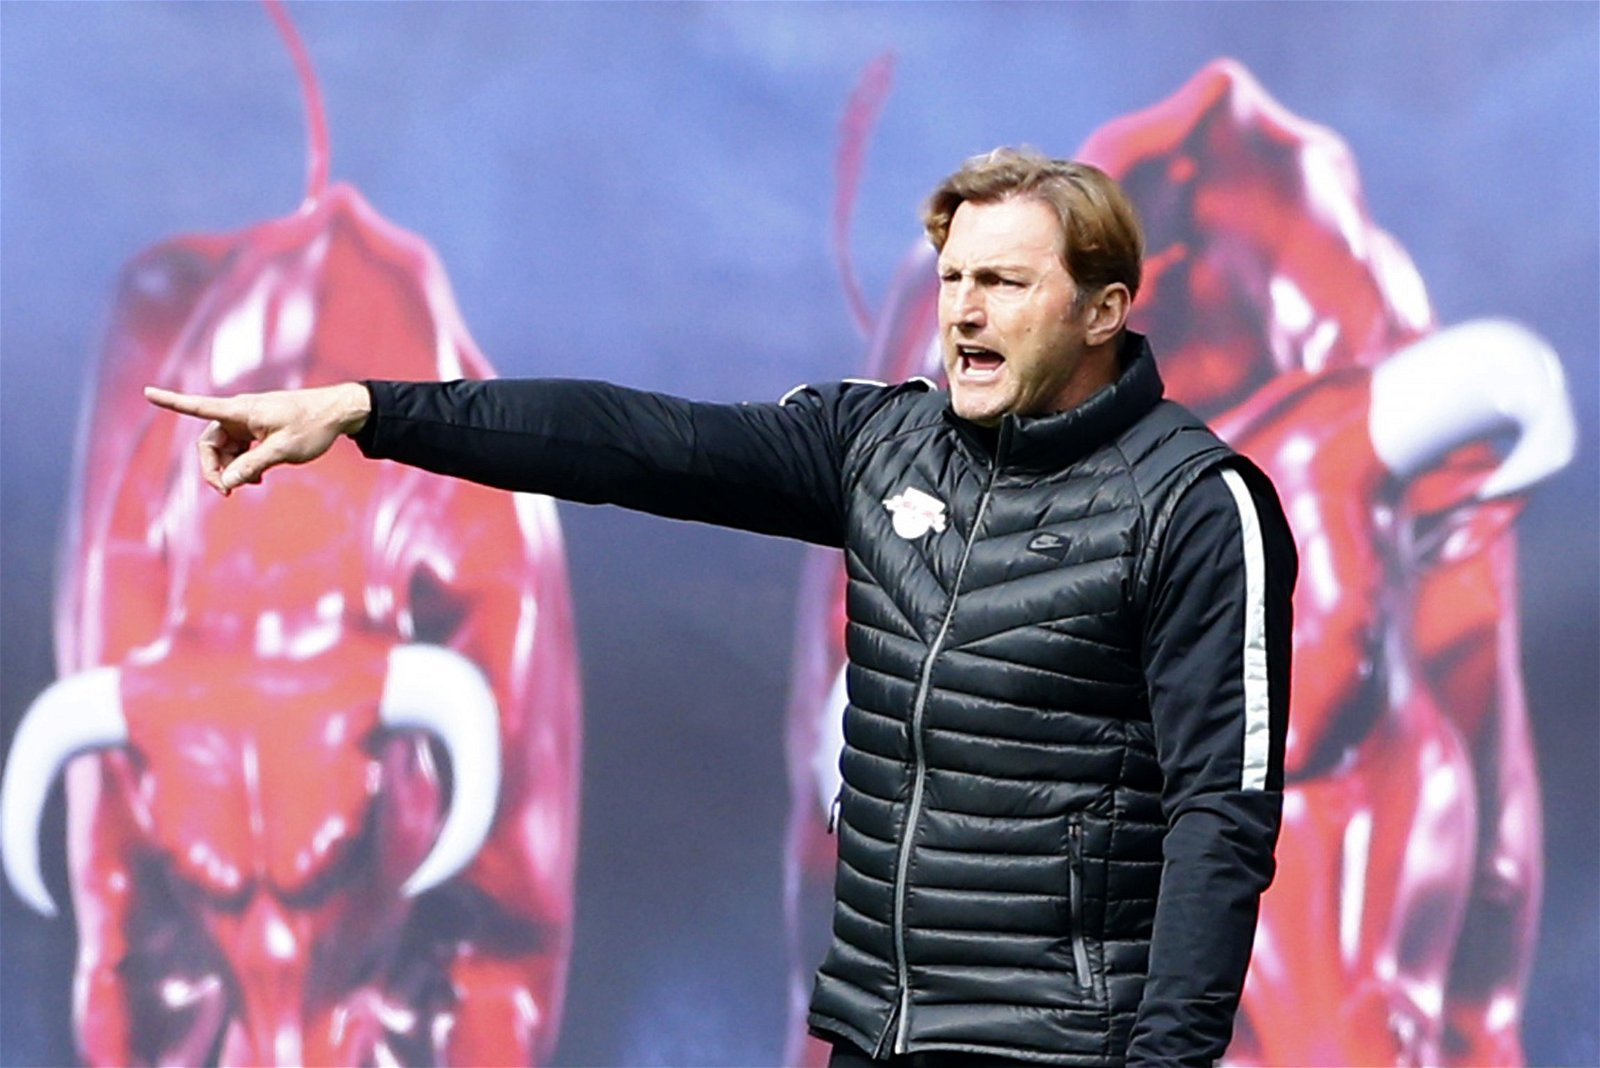 RB Leipzig manager Ralph Hasenhuttl gestures